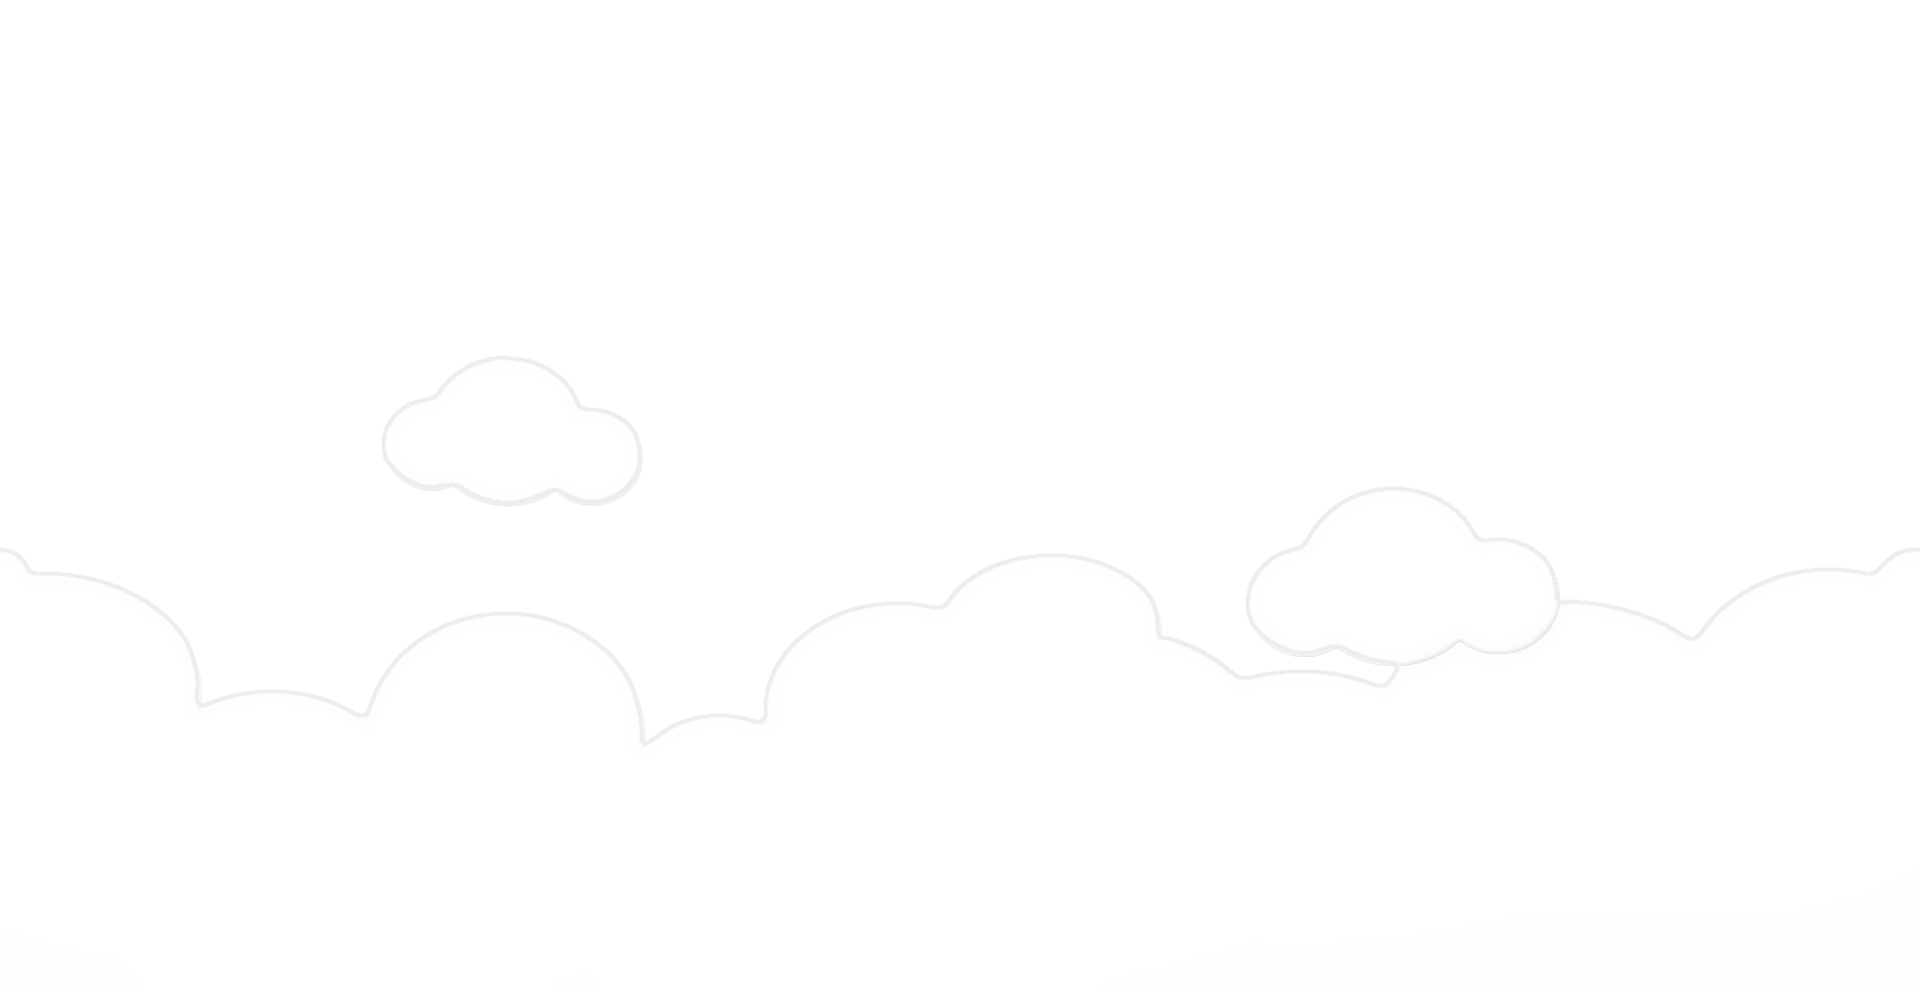 2d clouds png. Cartoony cloud images opengameart